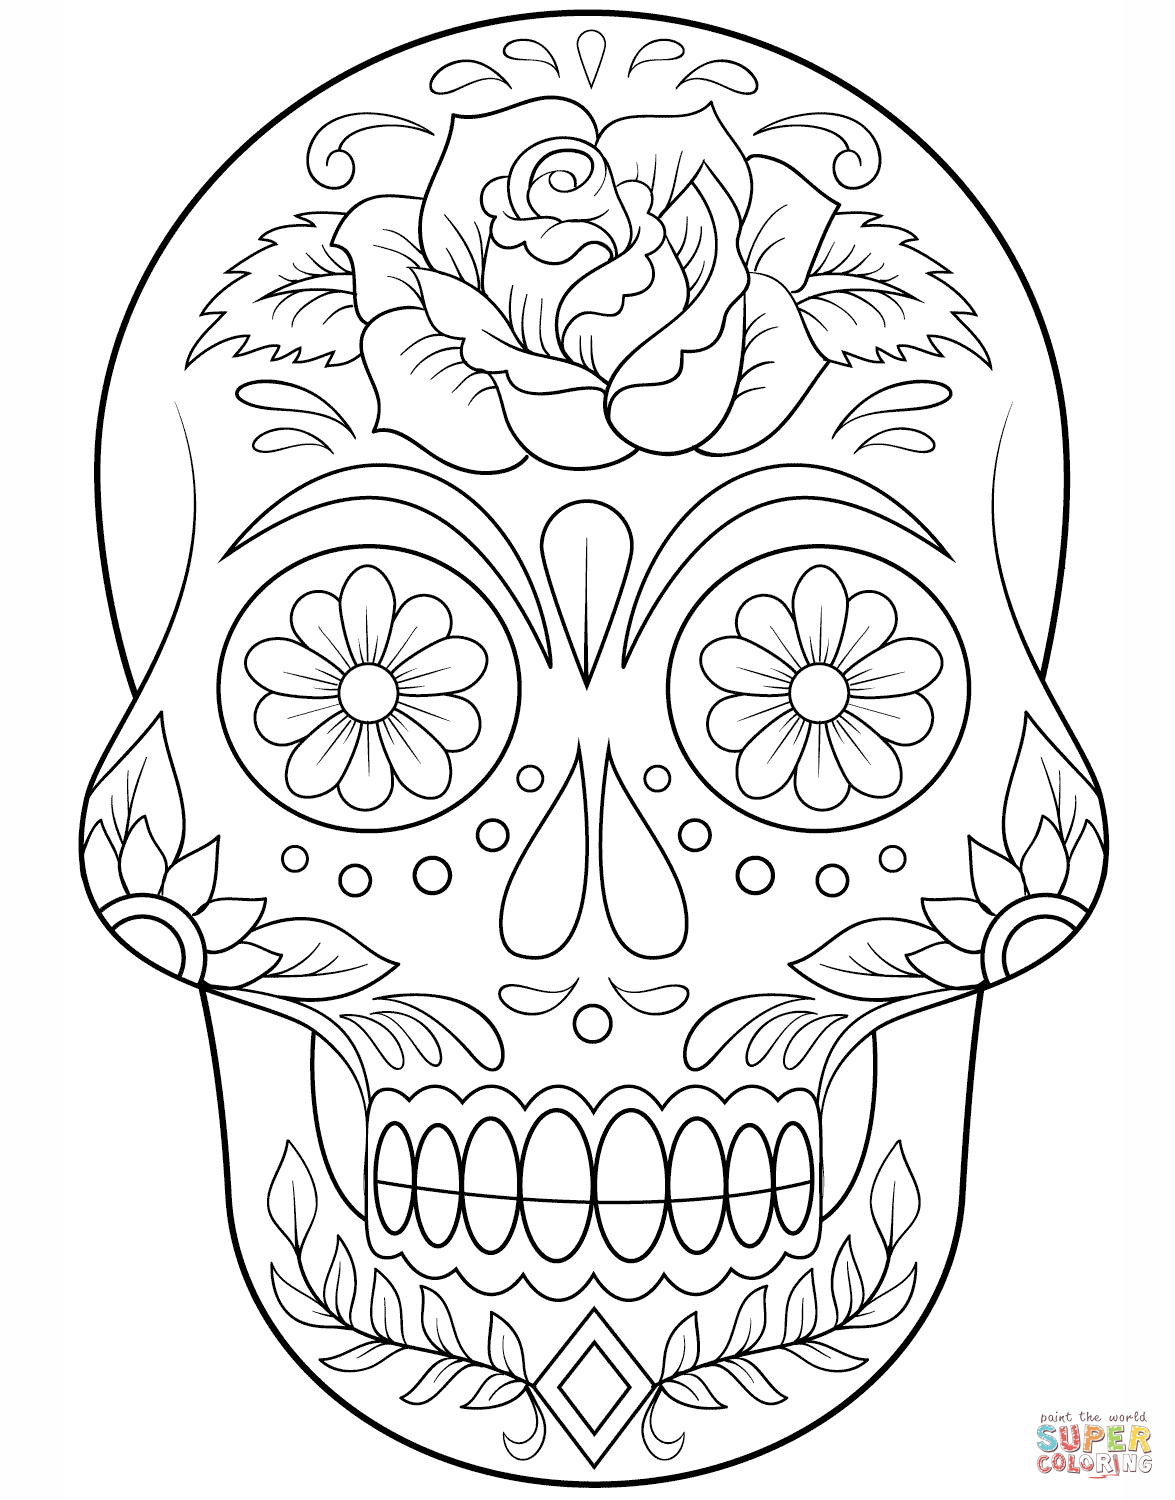 Sugar Skull With Flowers Coloring Page Png 1175 1500 Skull Coloring Pages Sugar Skull Drawing Flower Coloring Pages